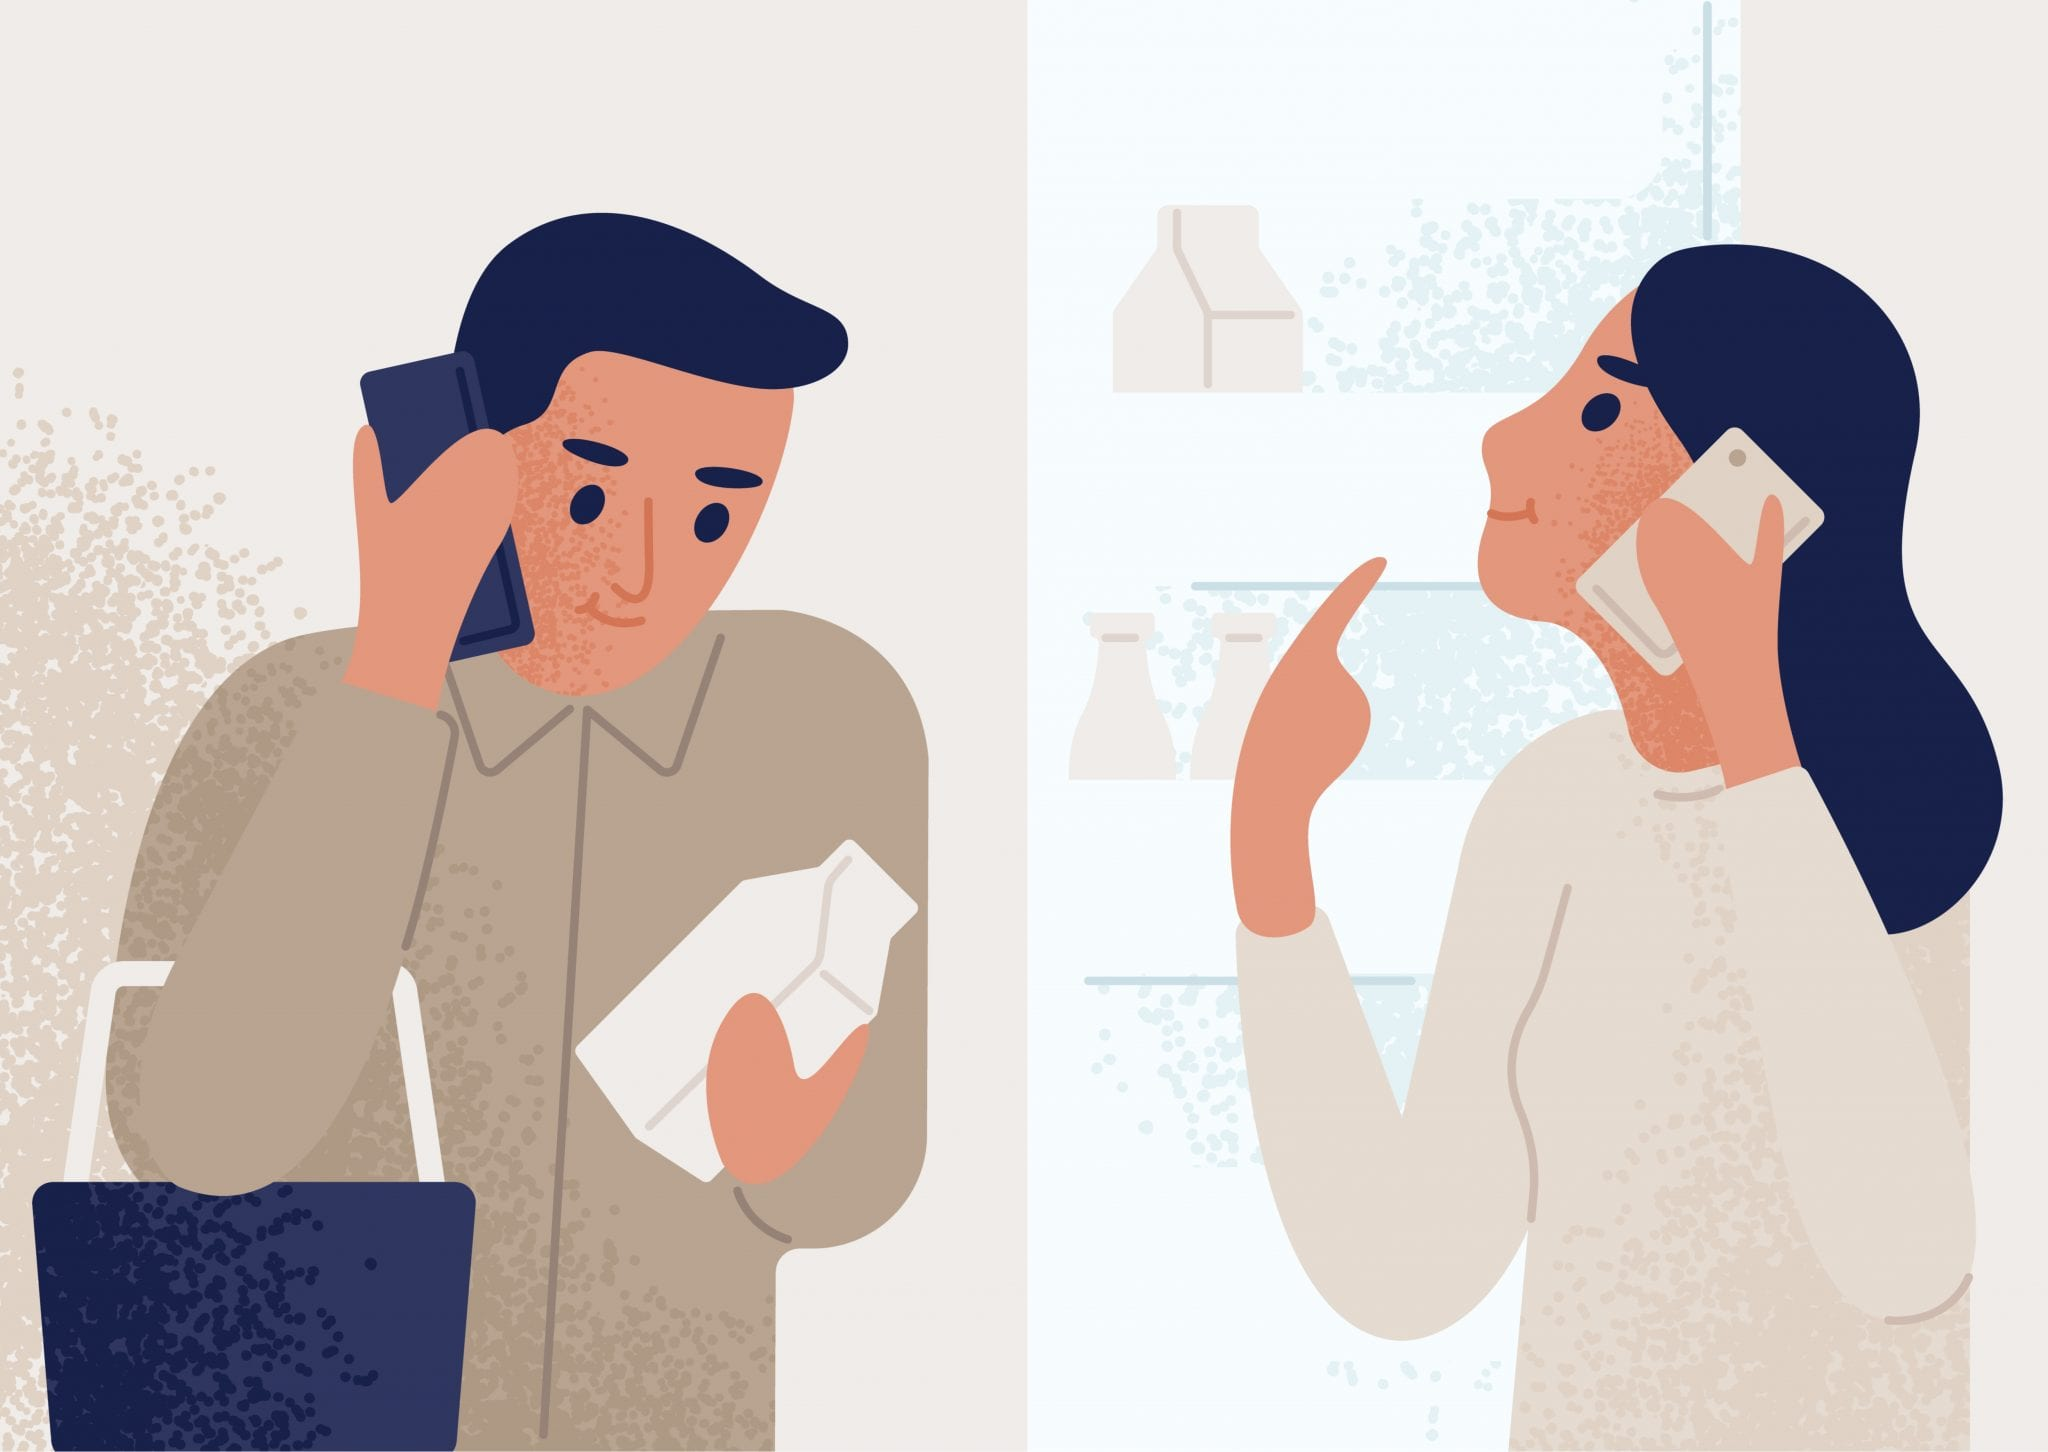 Woman Standing Near Opened Refrigerator and Talking on Mobile Phone to Man Shopping for Groceries. Couple Communicating Through Smartphone. Telephone Conversation or Dialog.